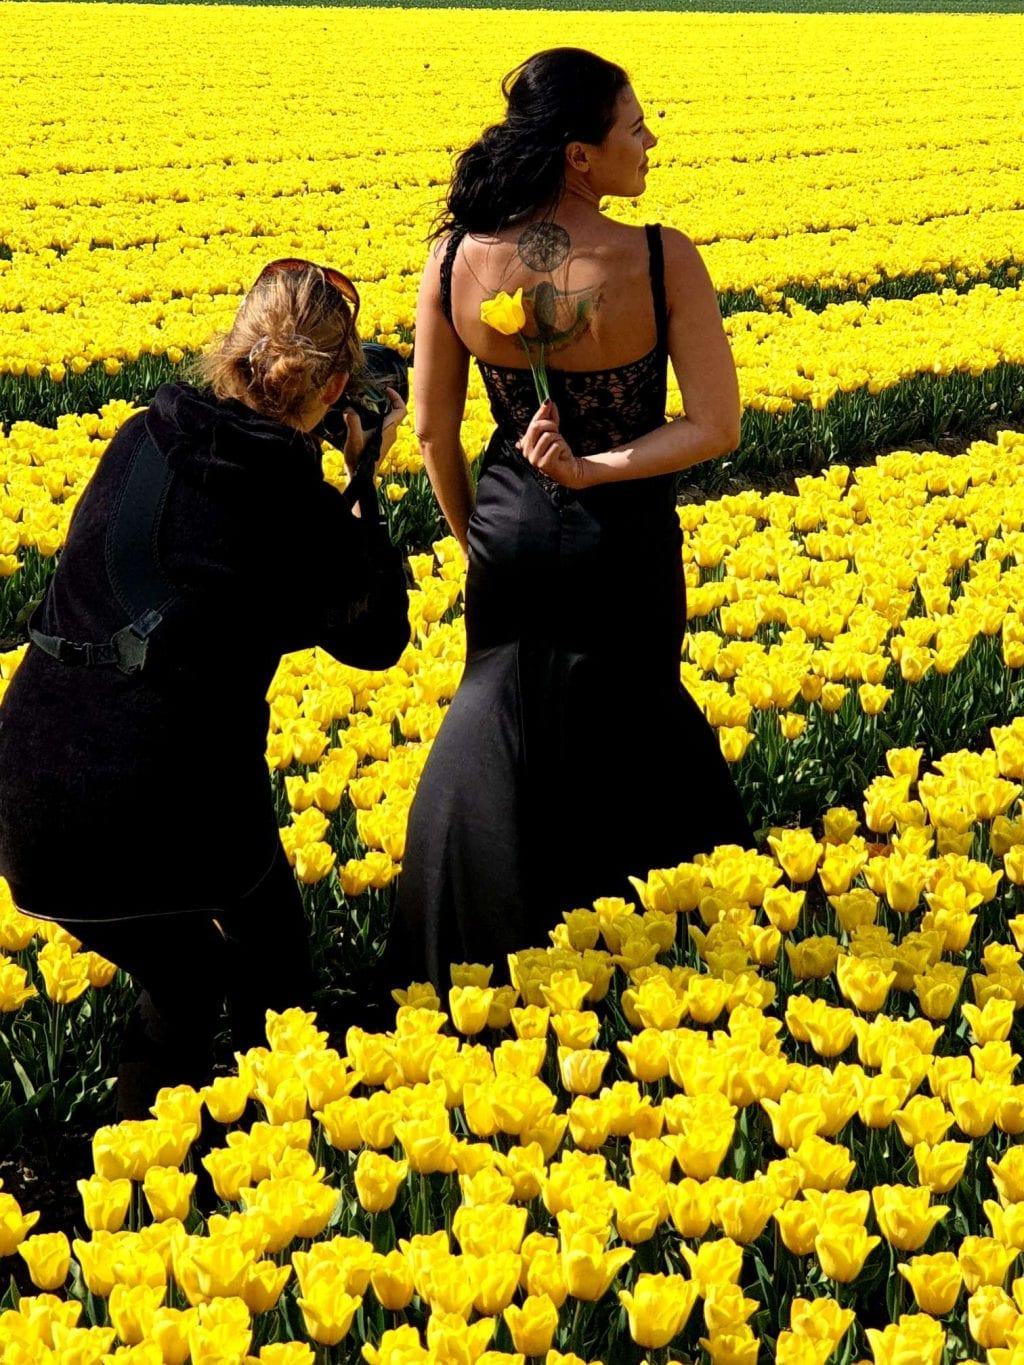 Dutch tulips photographer taking pictures of bride among tulip field